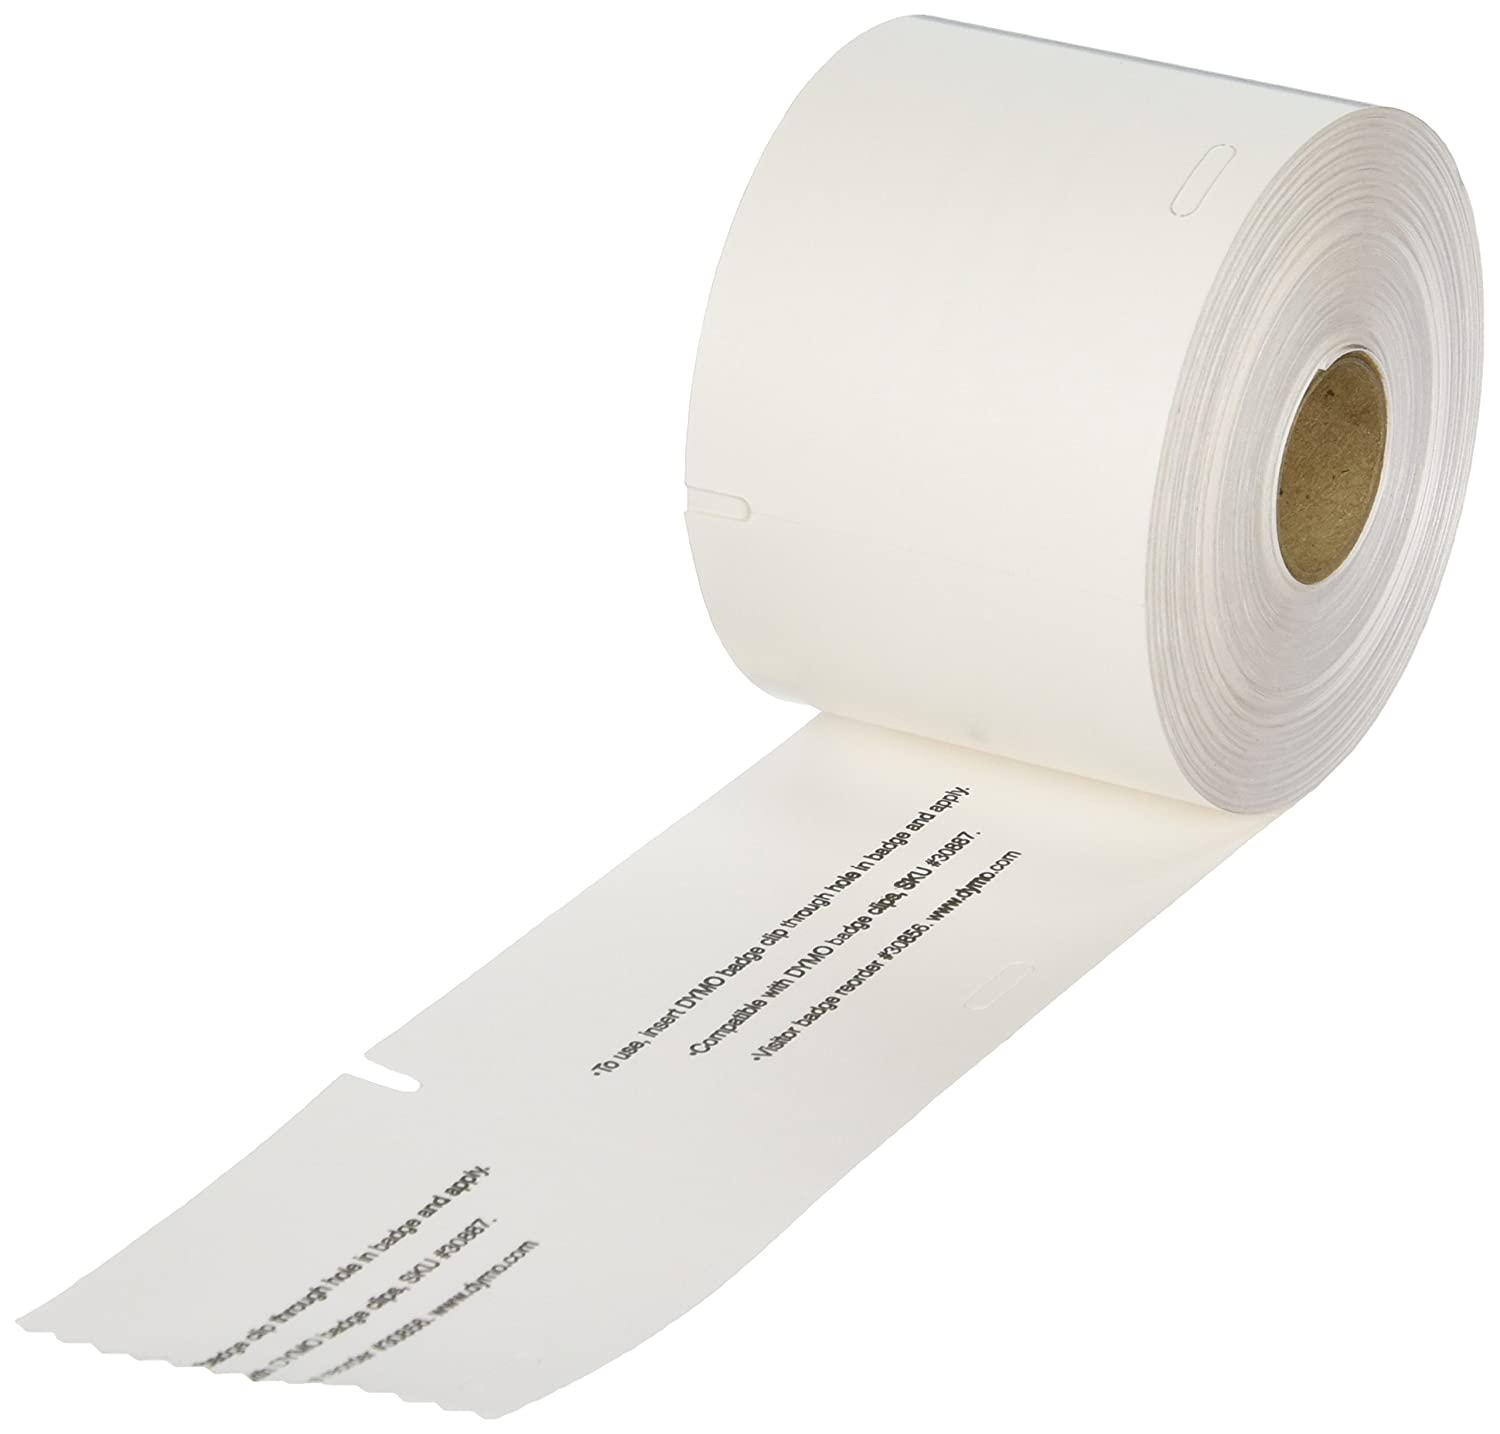 DYMO LW Book Spine Labels for LabelWriter Label Printers, White, 1'' x 1-1/2'', 1 roll of 750 (30347)